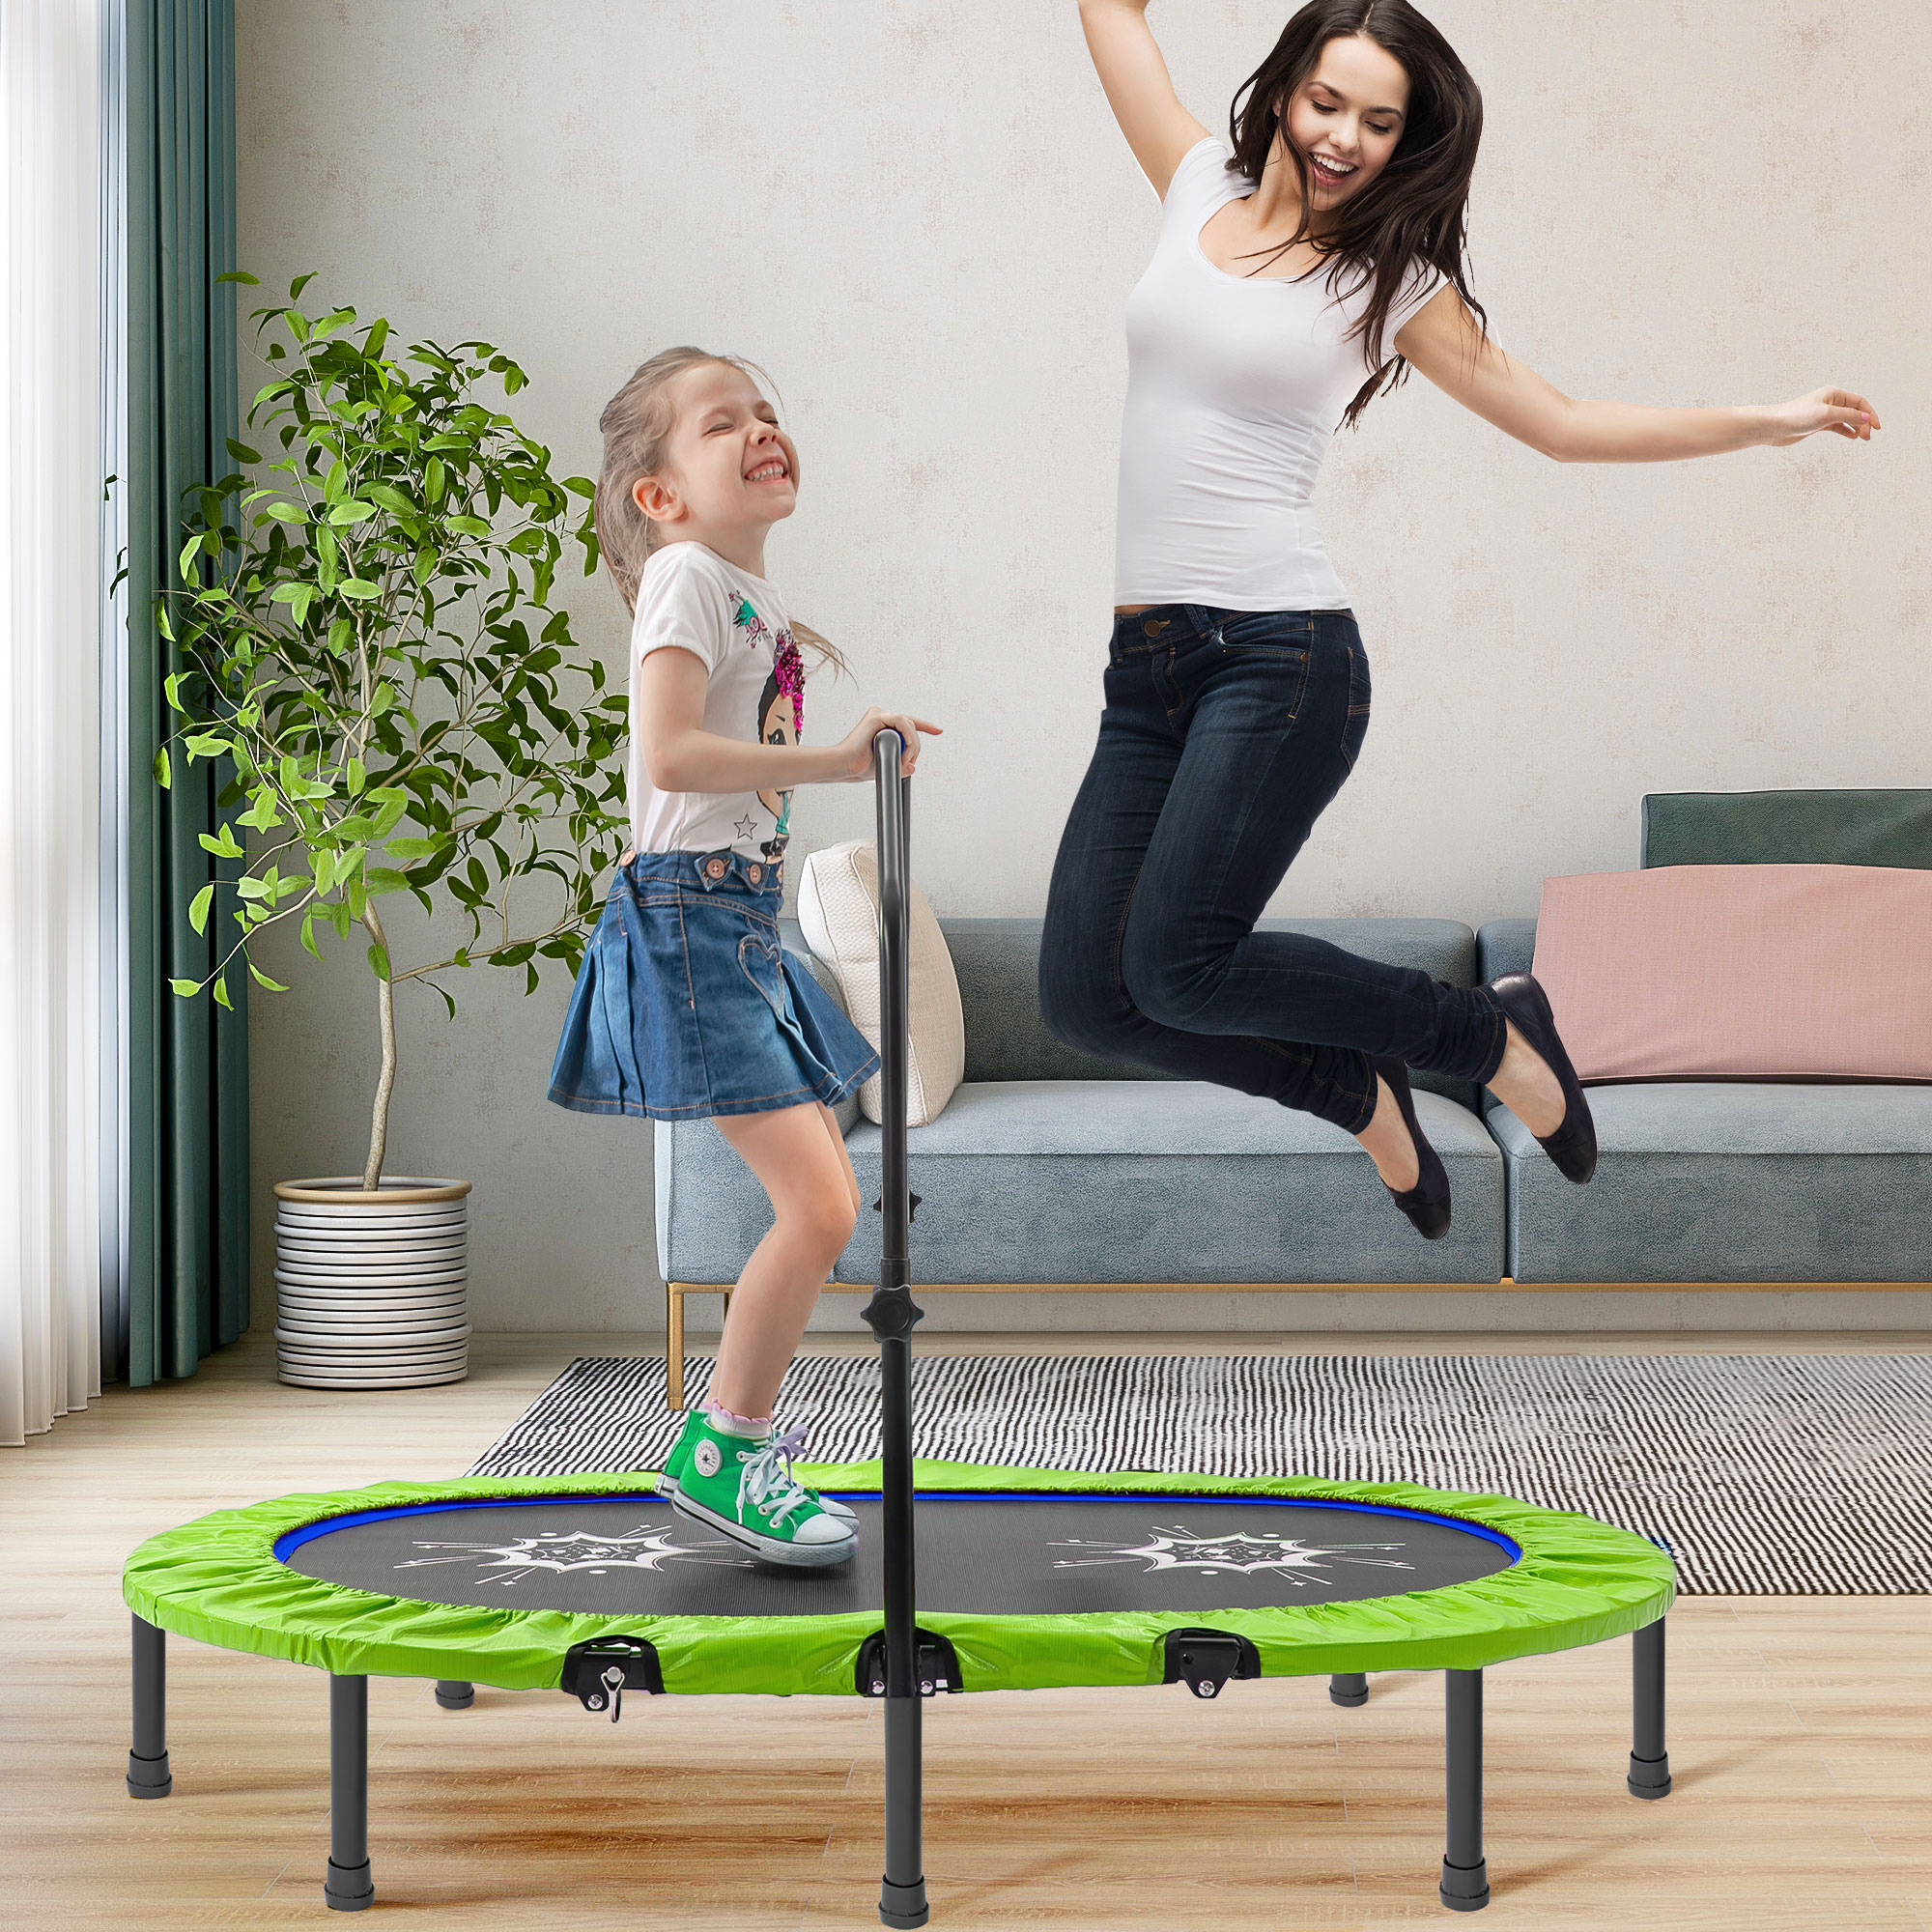 Blue Age 2-10 Gulujoy Mini Trampoline for Kids Indoor Outdoor with Enclosure Net and Safety Pad 55 Inch Heavy Duty 130Lbs